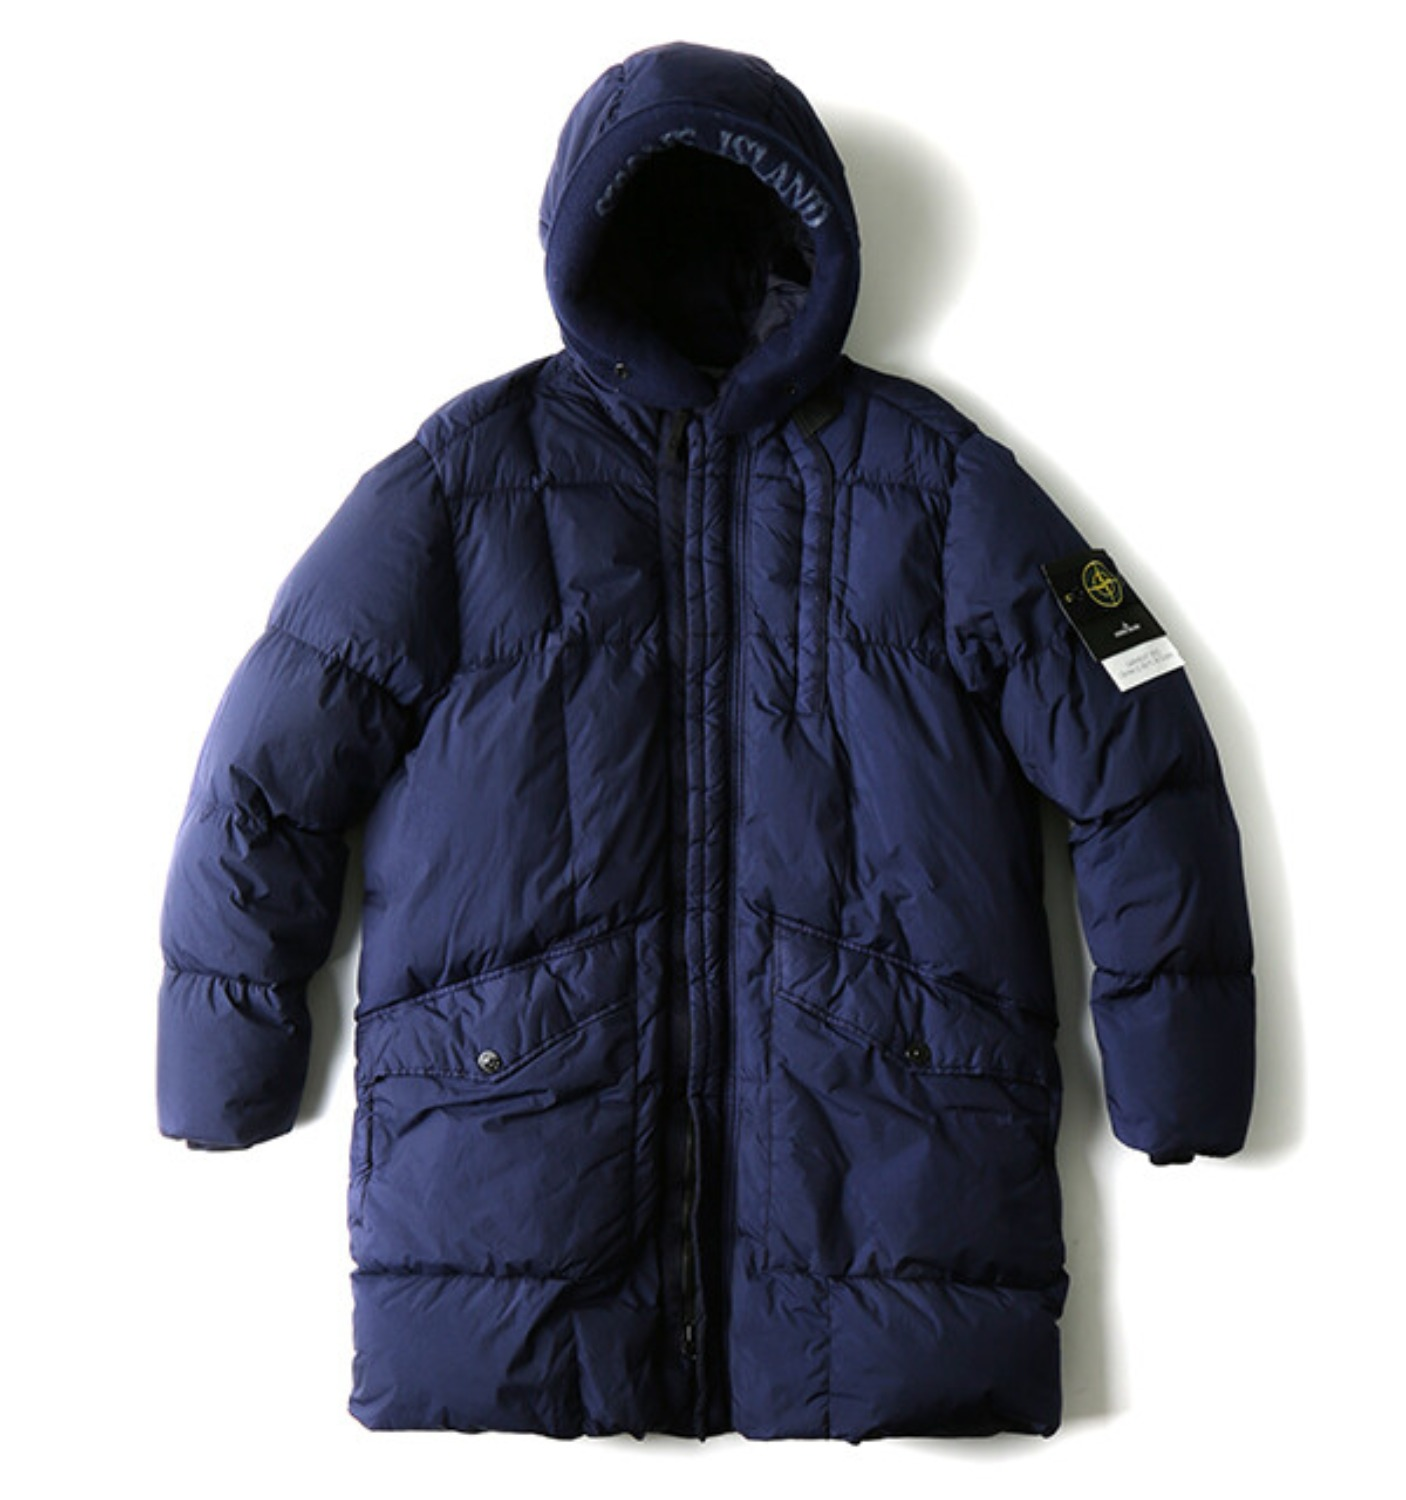 GARMENT DYED CRINKLE REPS NY DOWN PARKA NAVY